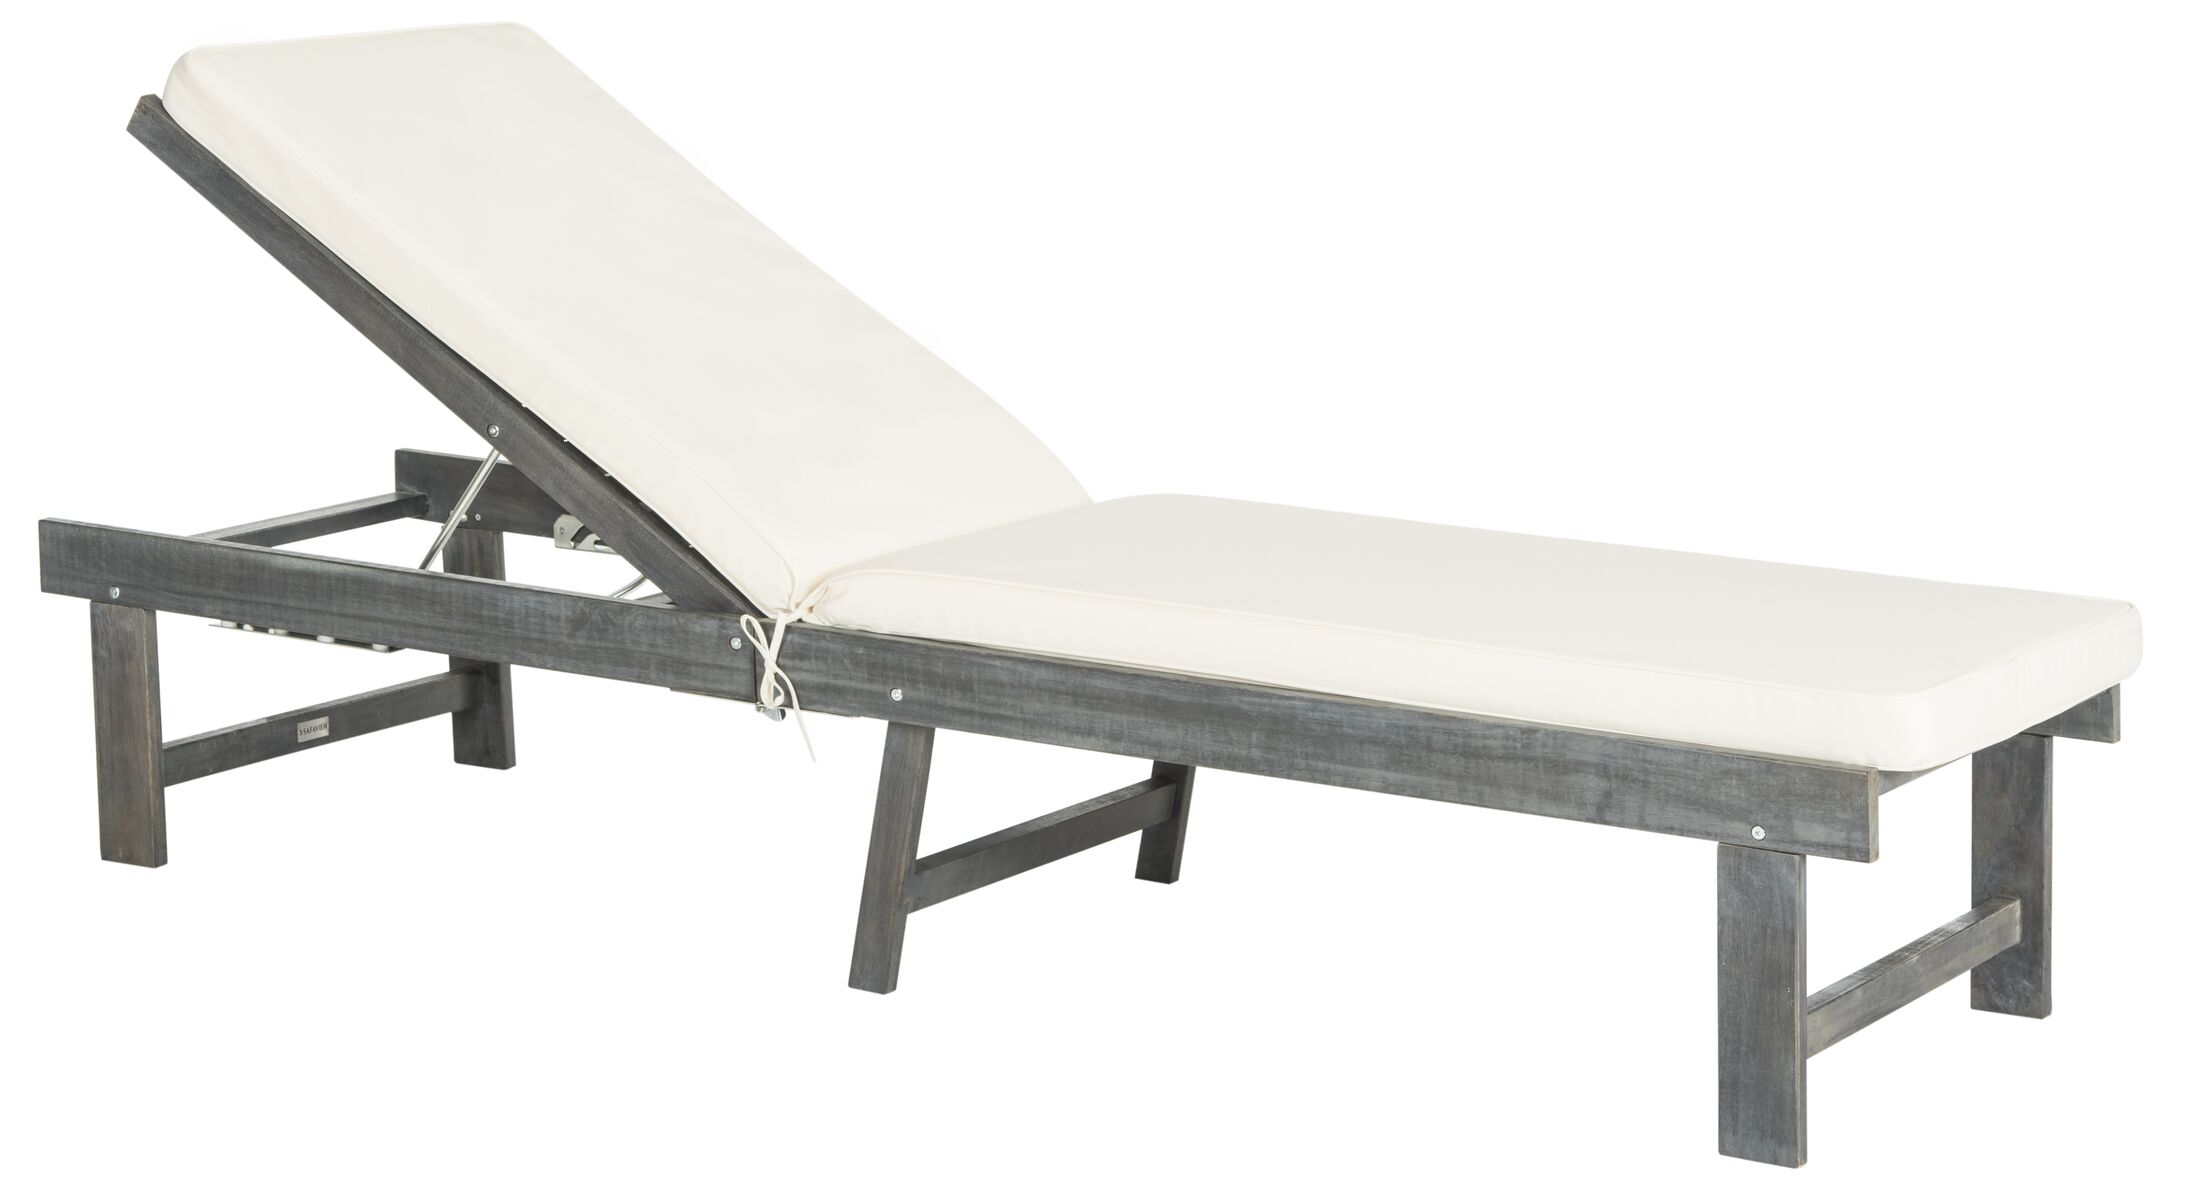 Matheny Reclining Teak Chaise Lounge with Cushion Color: Ash Grey / Beige